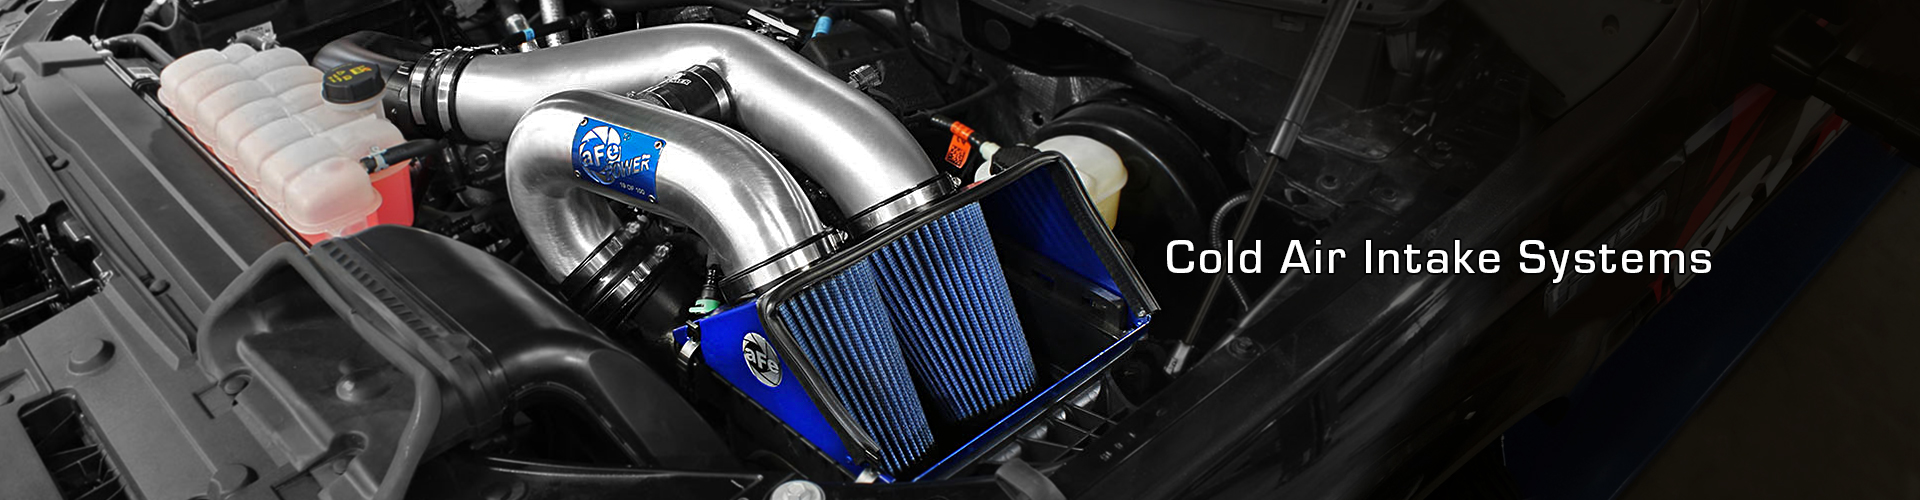 Cold Air Intake Systems Afe Power